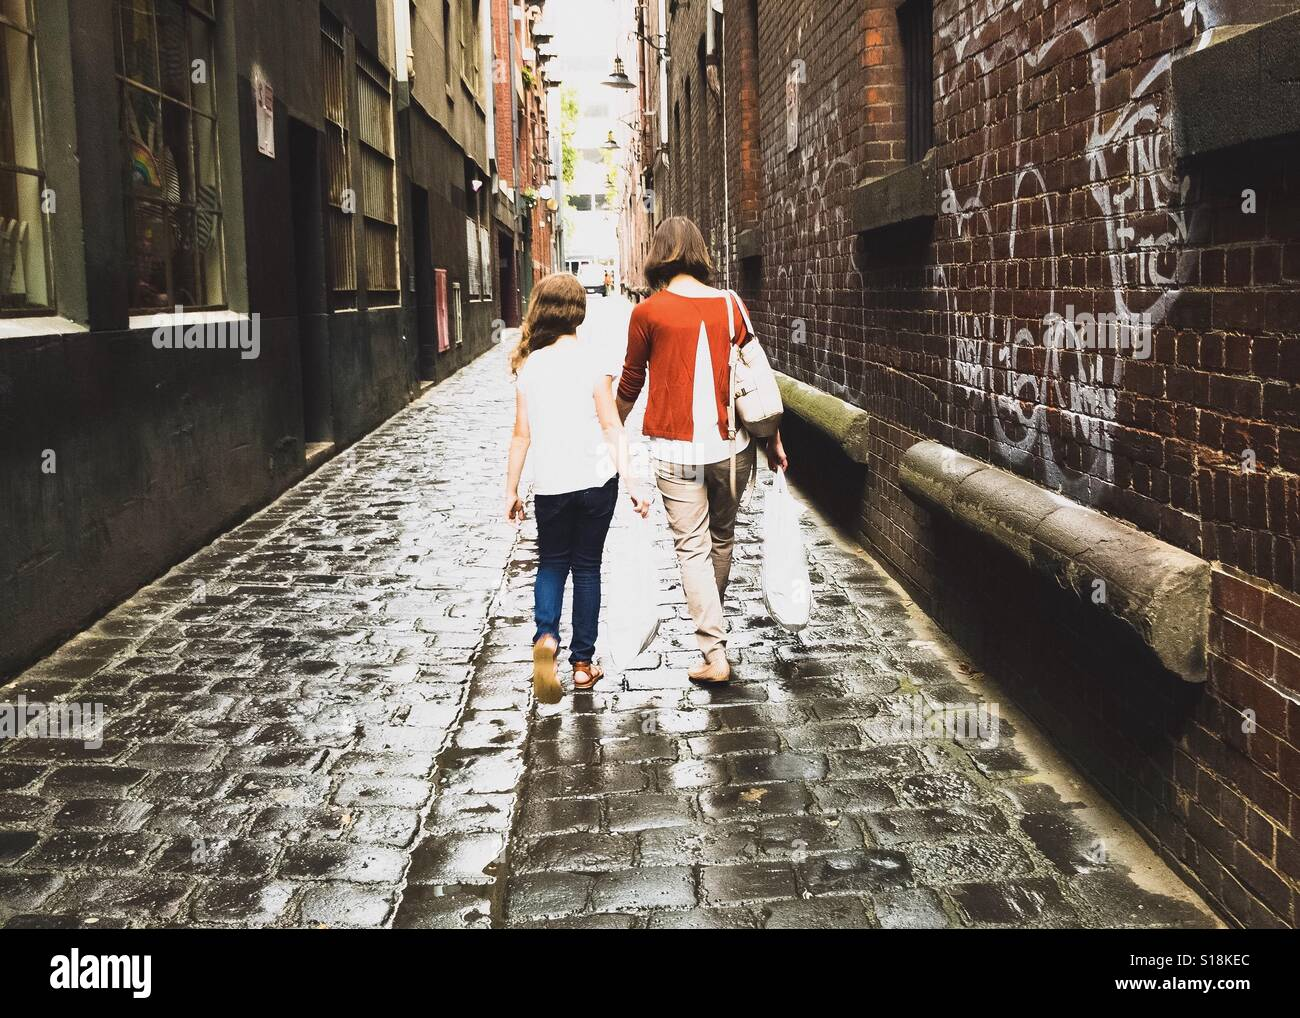 Mother and daughter on shopping trip - Stock Image